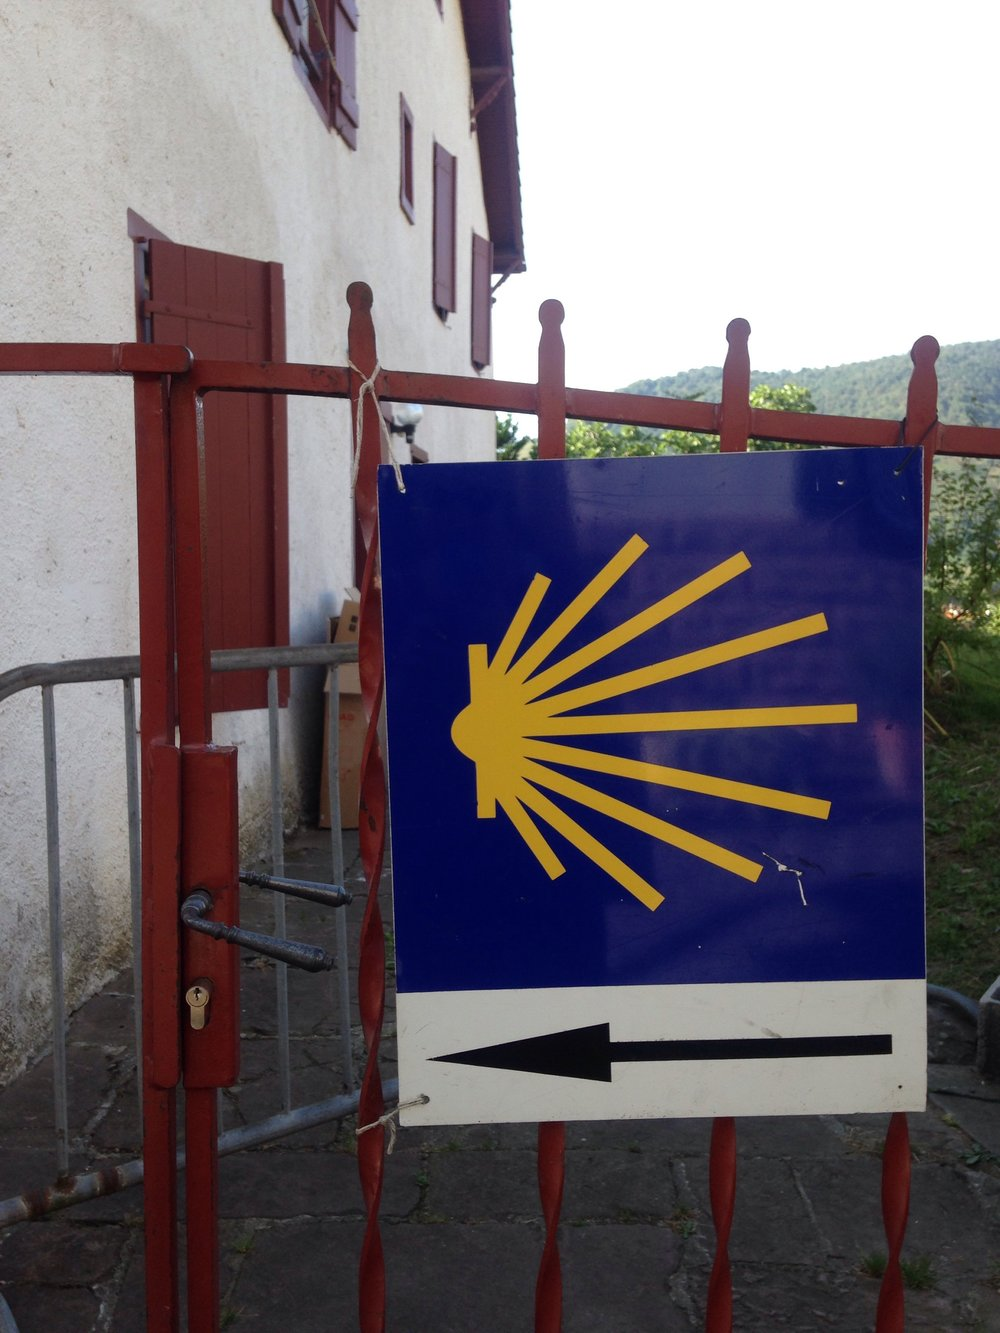 This way to the camino peregrinos.